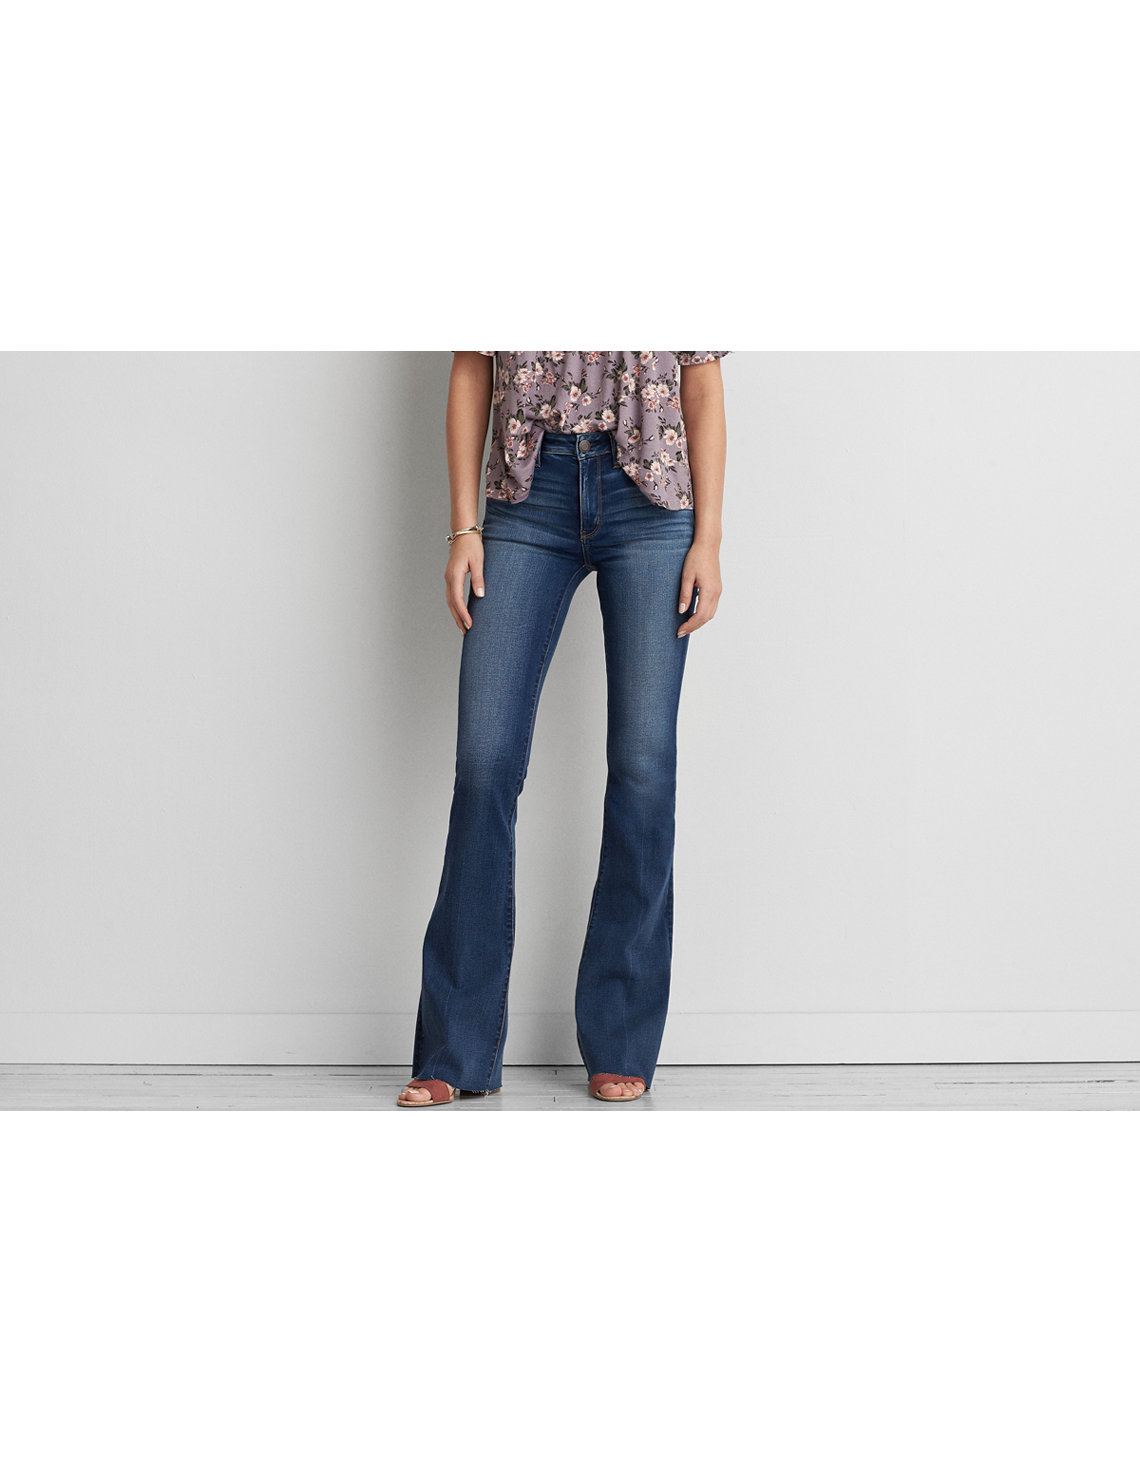 AEO Denim X Hi-Rise Slim Flare Jean, Had A Cool Moment | American ...